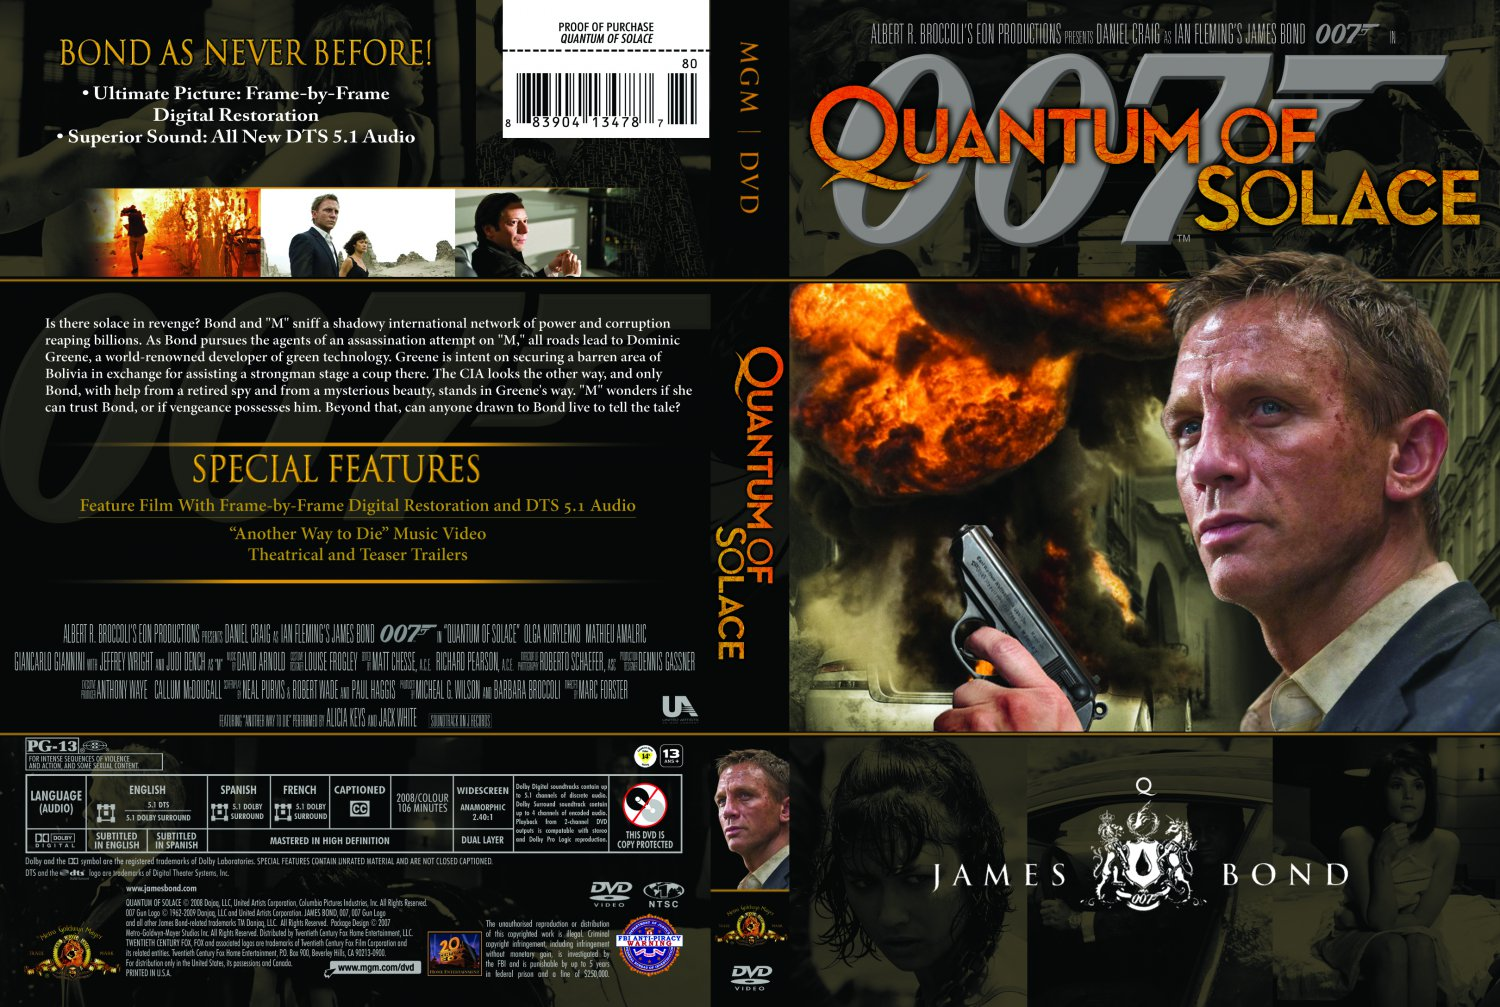 Quantum of Solace - Movie DVD Custom Covers - QuantumSolaceFINAL ... Quantum Of Solace Cover